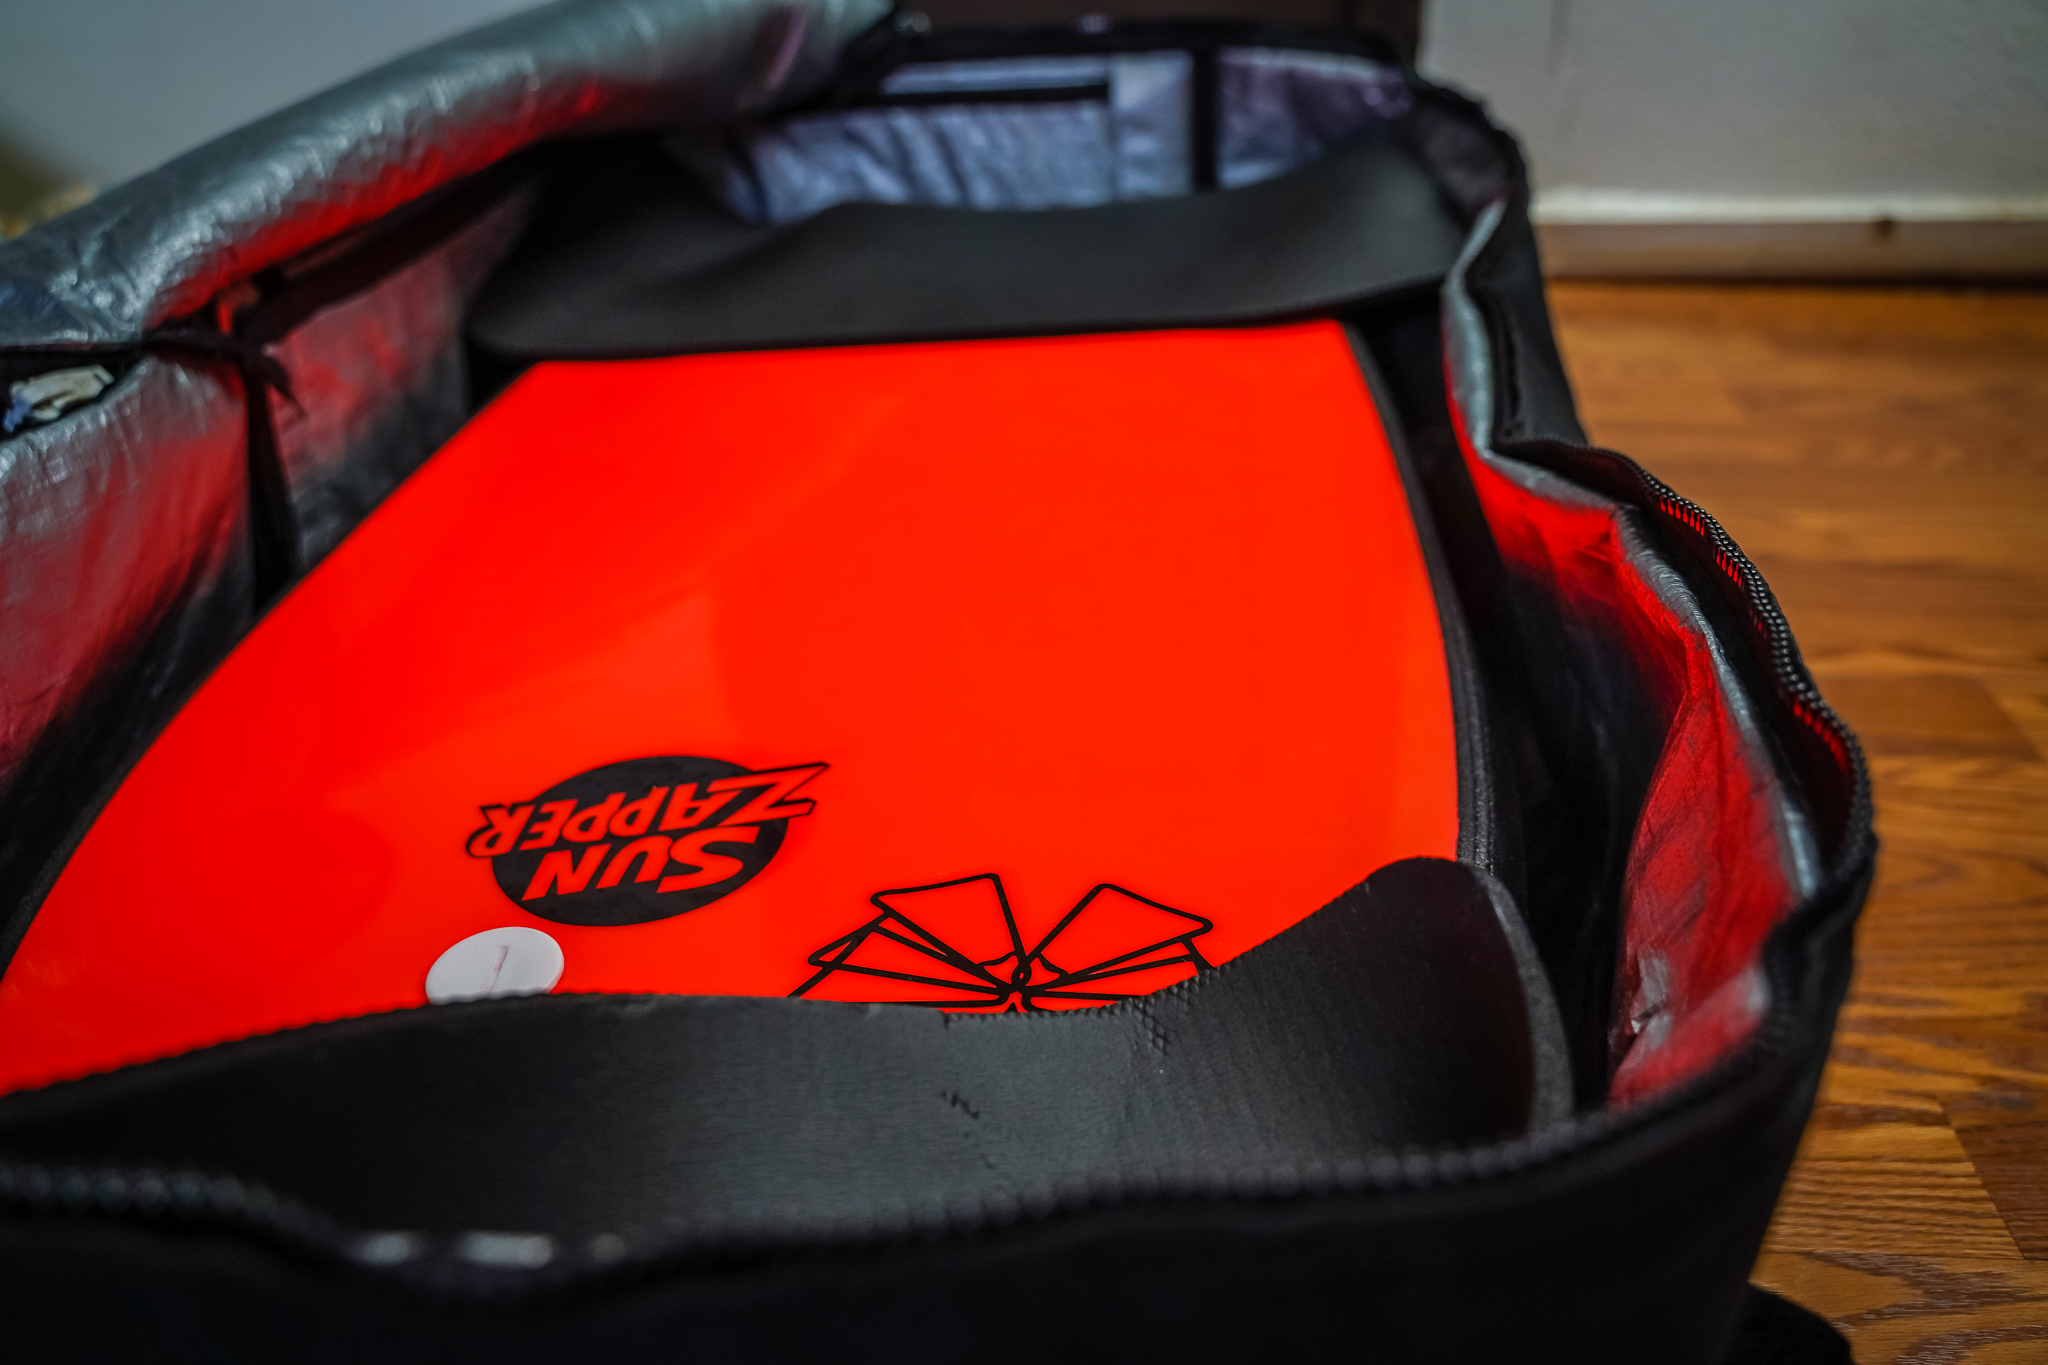 Traveling with Board Bags